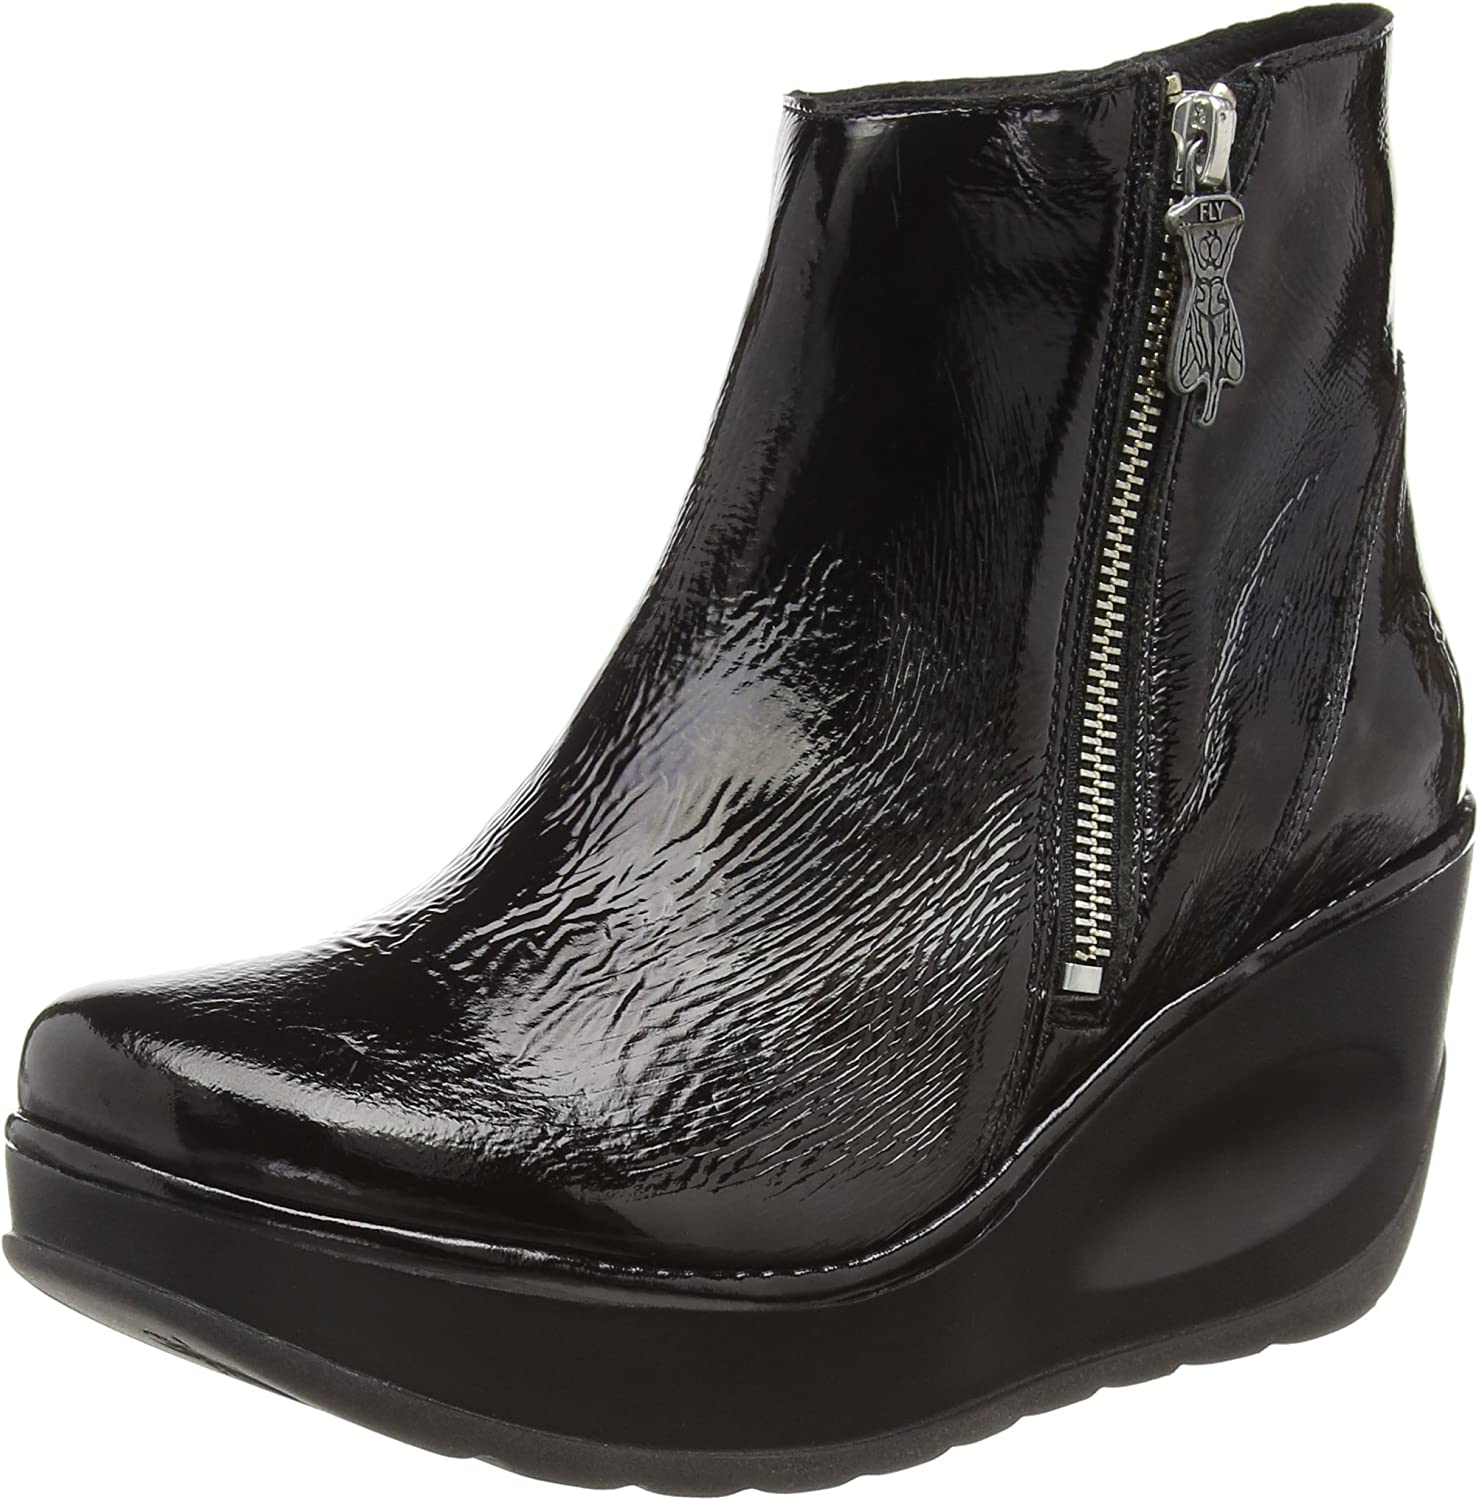 Fly London Women's Jome Luxor Leather Zip up Wedge Boot Black